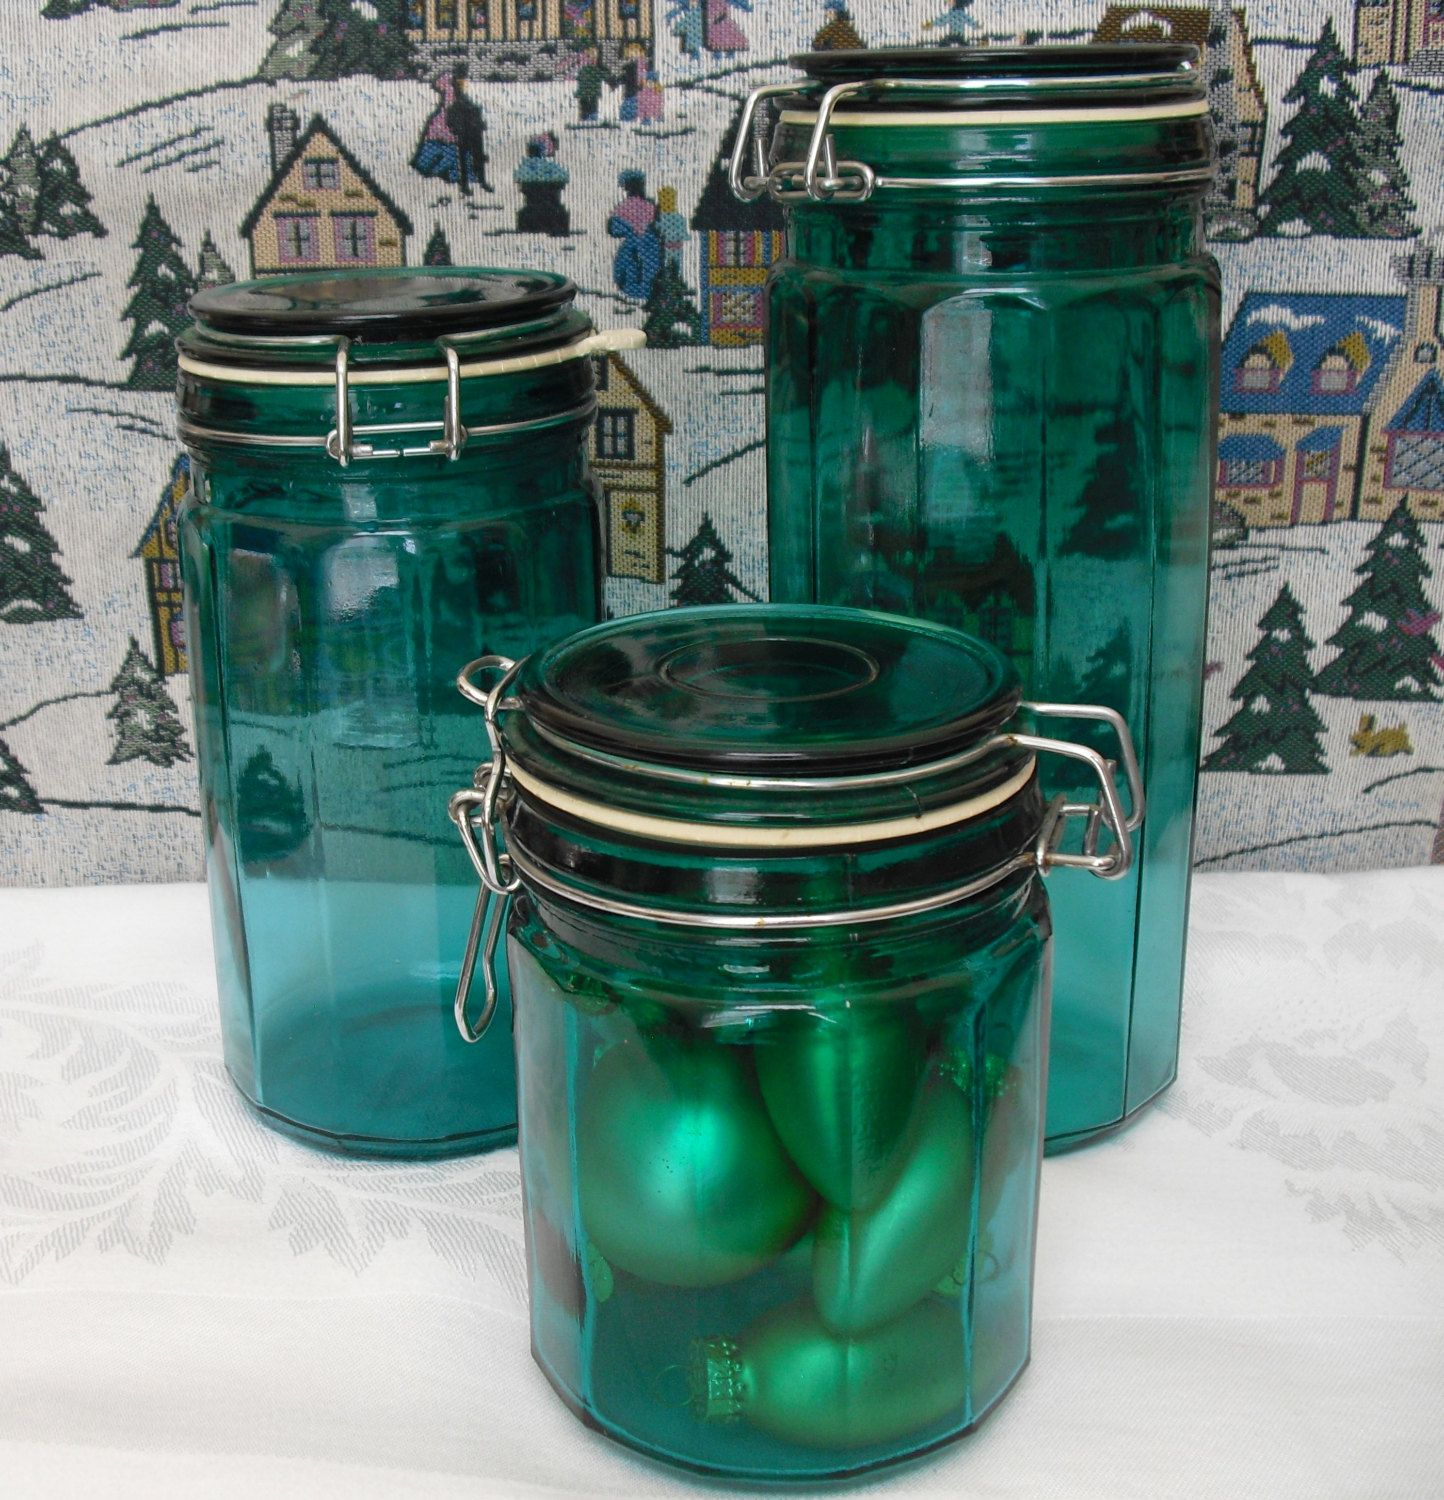 Vintage Italglass Green Glass 3 Piece Canister Set With Metal Clasp  Closure, Kitchen